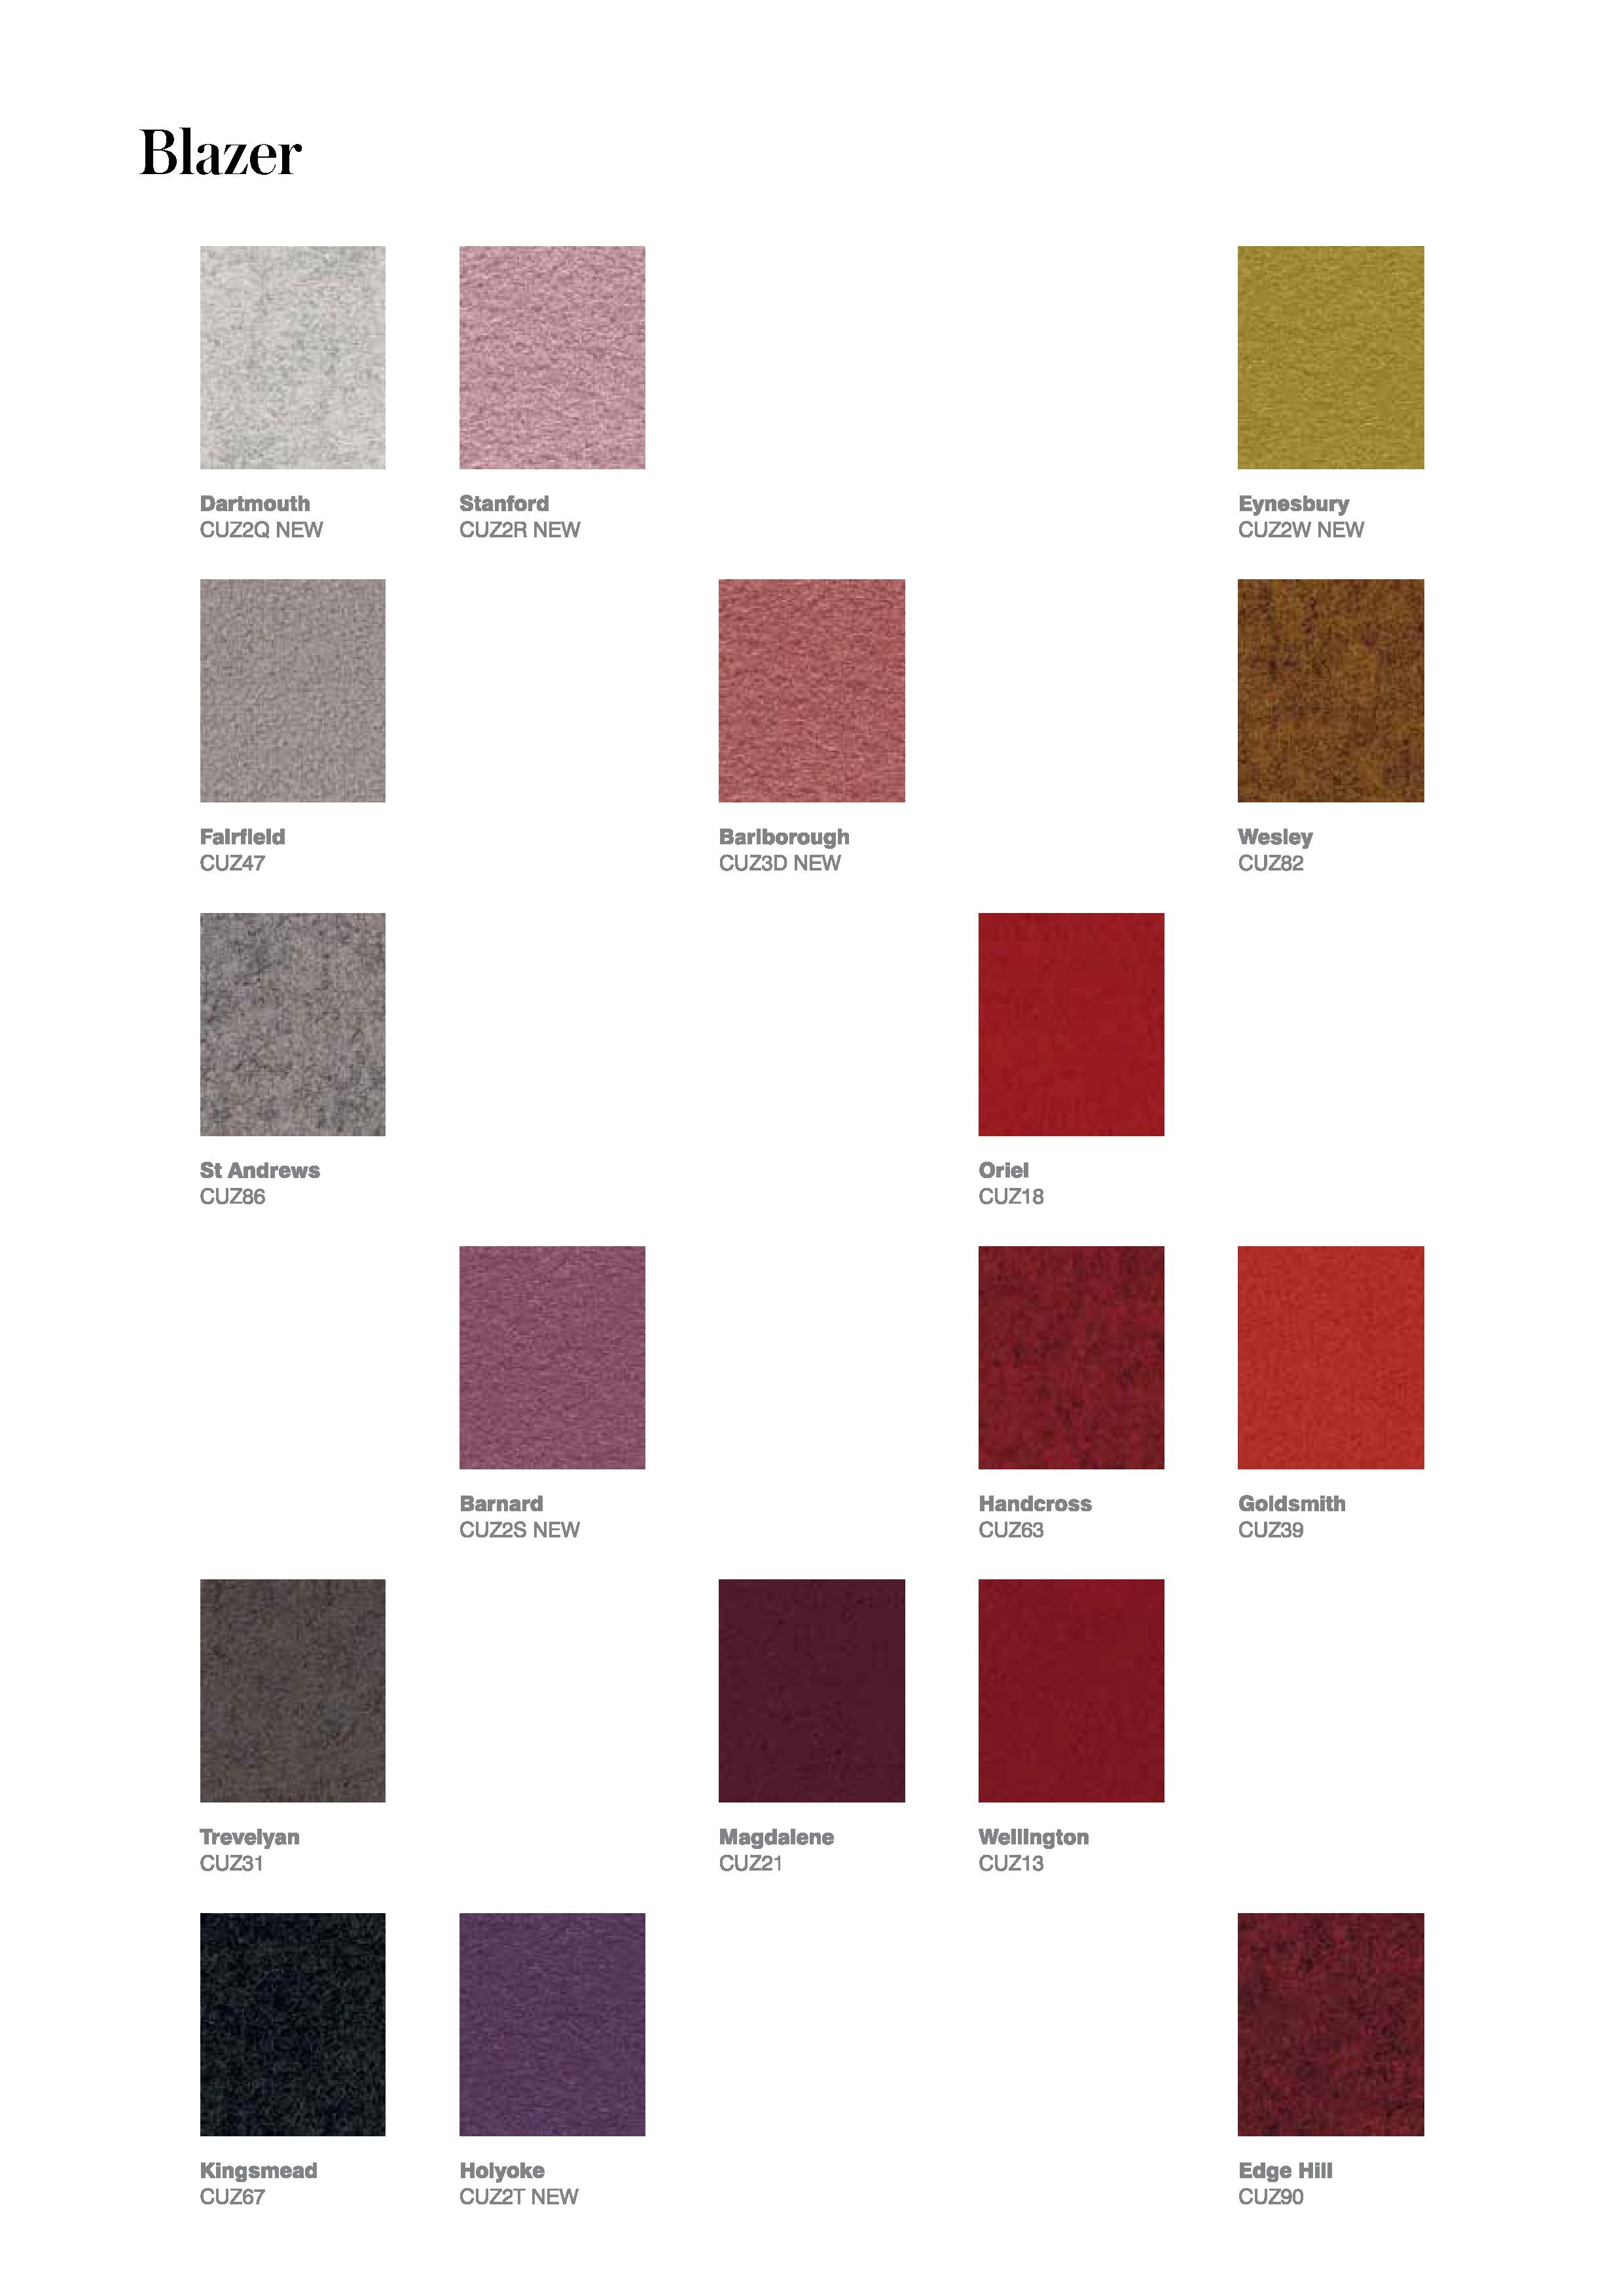 Camira Blazer In 2020 Shade Card Fabric Color Fabric Collection